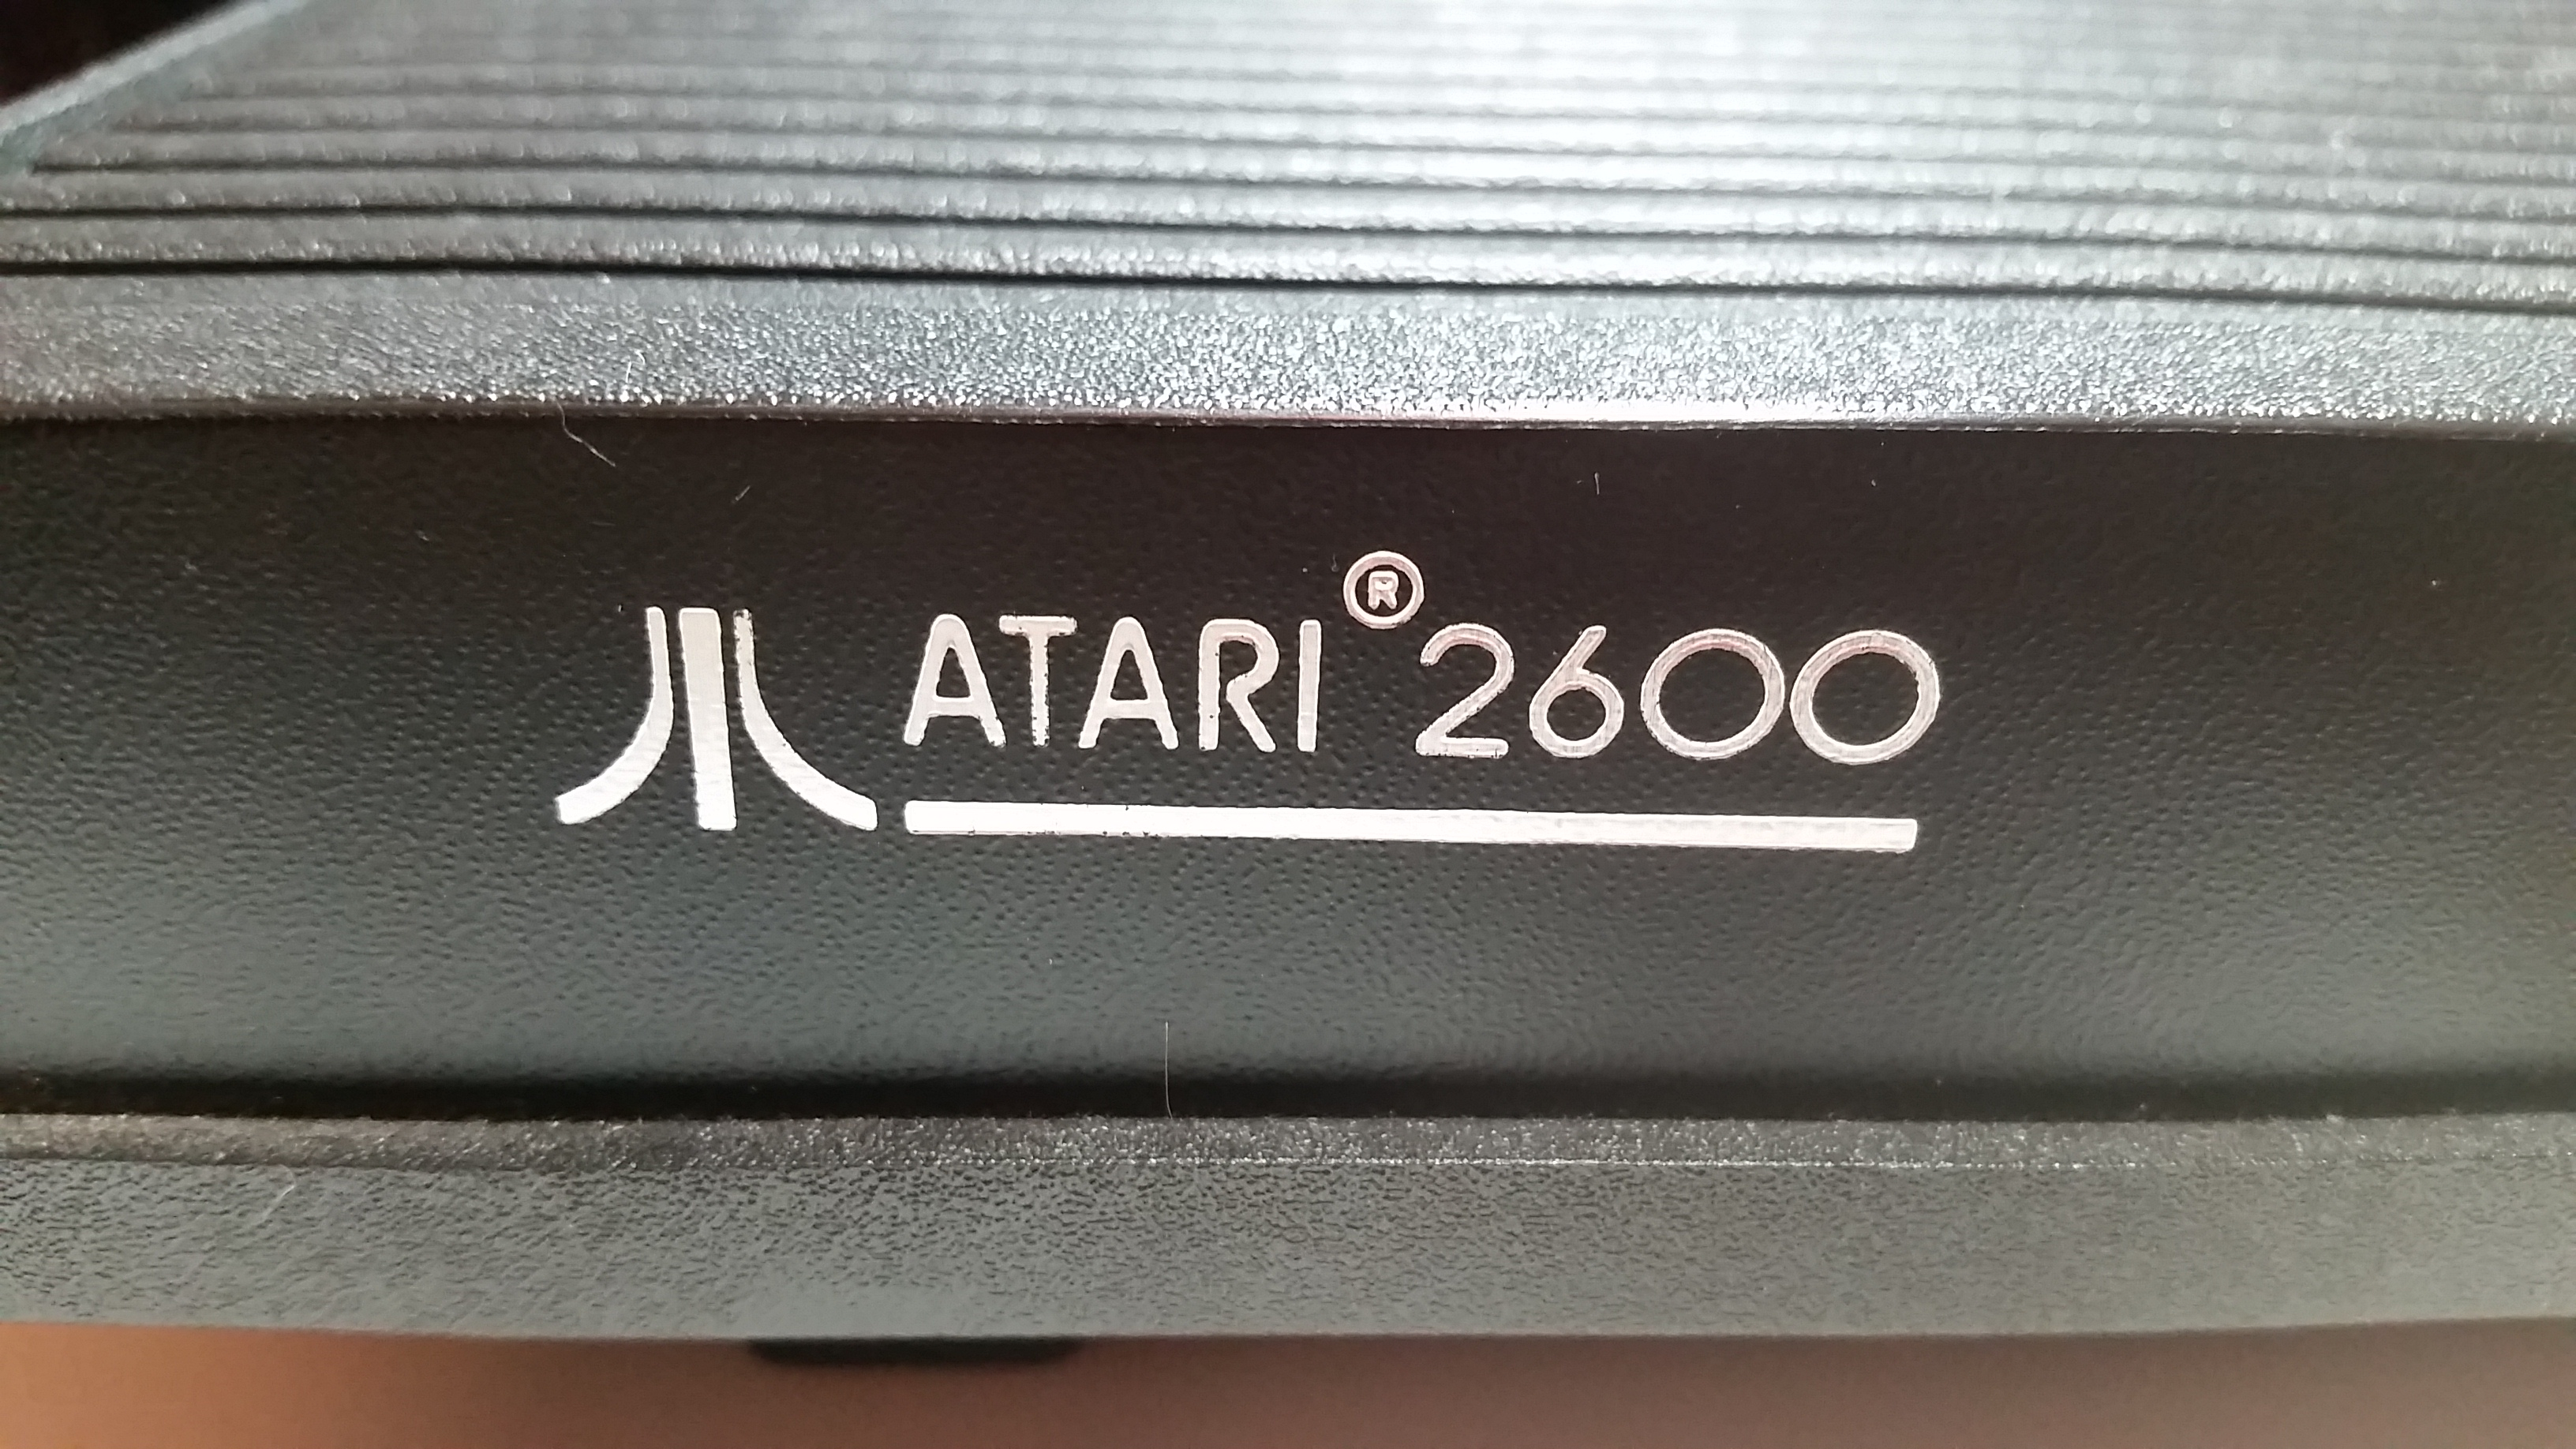 [RetroPicks] Eternal, immortal, everlasting. In other words Atari 2600